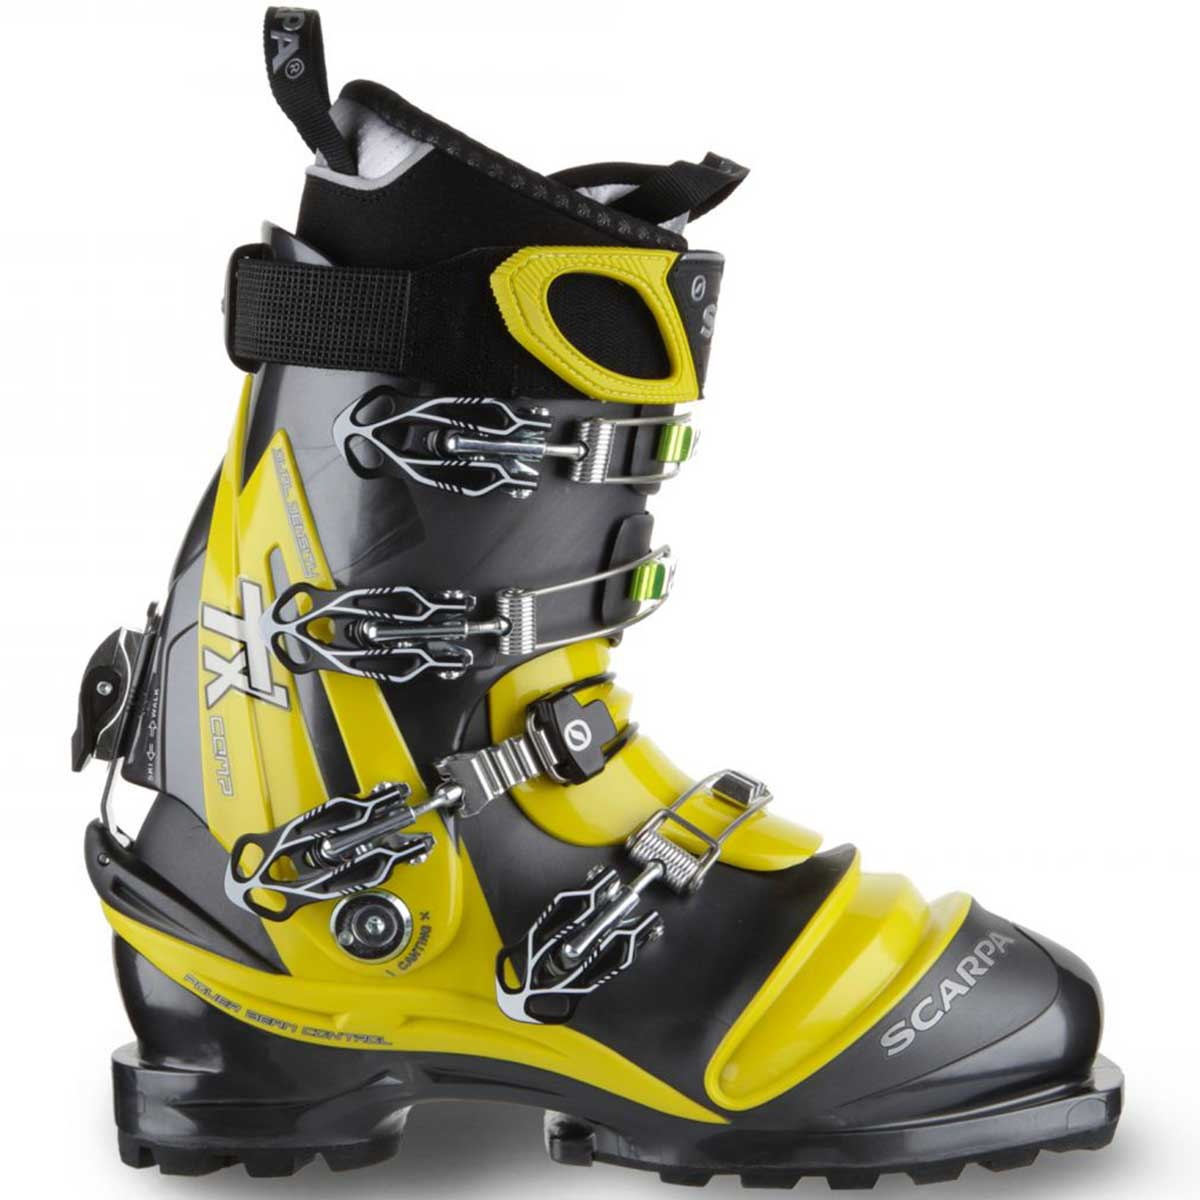 Scarpa TX Comp men's Telemark ski boot in anthracite and acid green